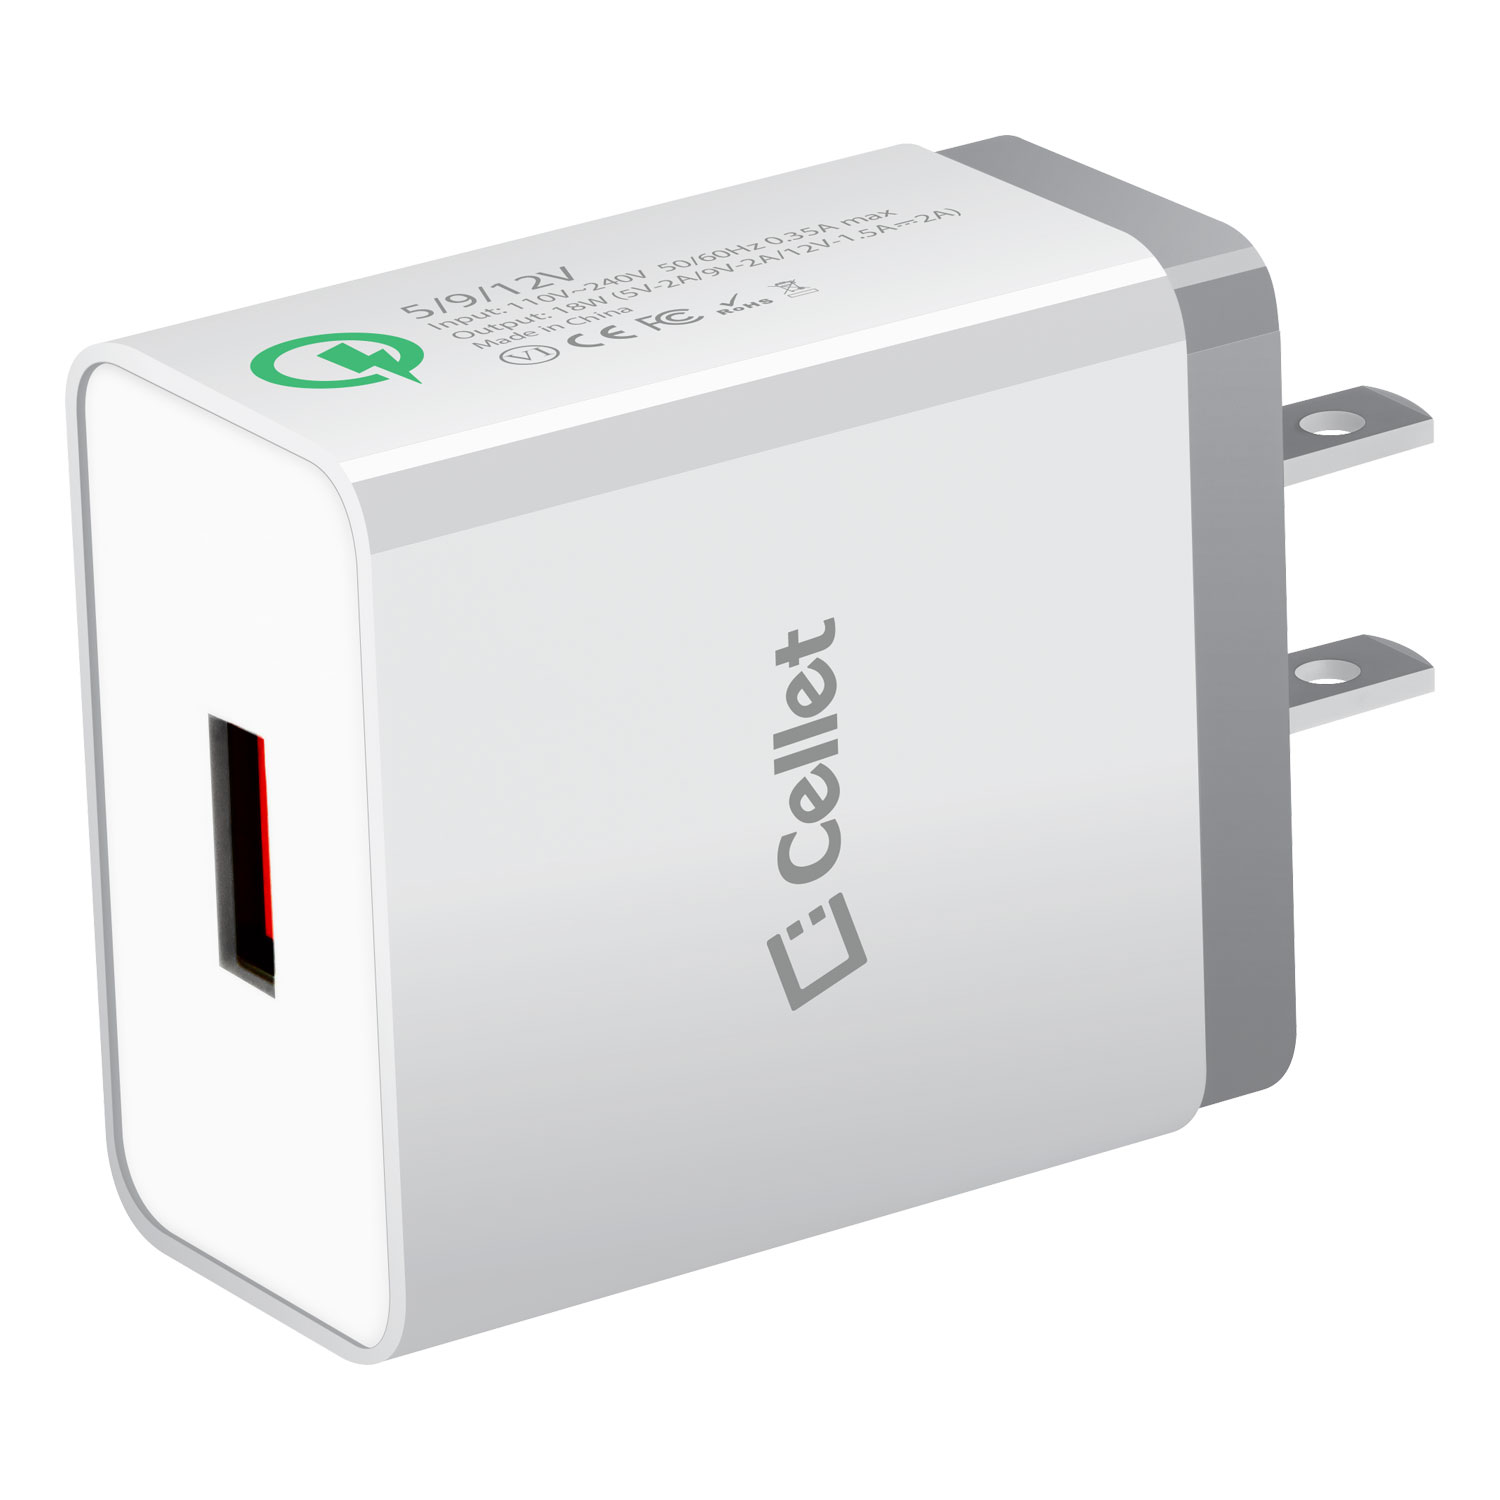 USB Type-C 4x Quick Home Charger White 3.3ft Round